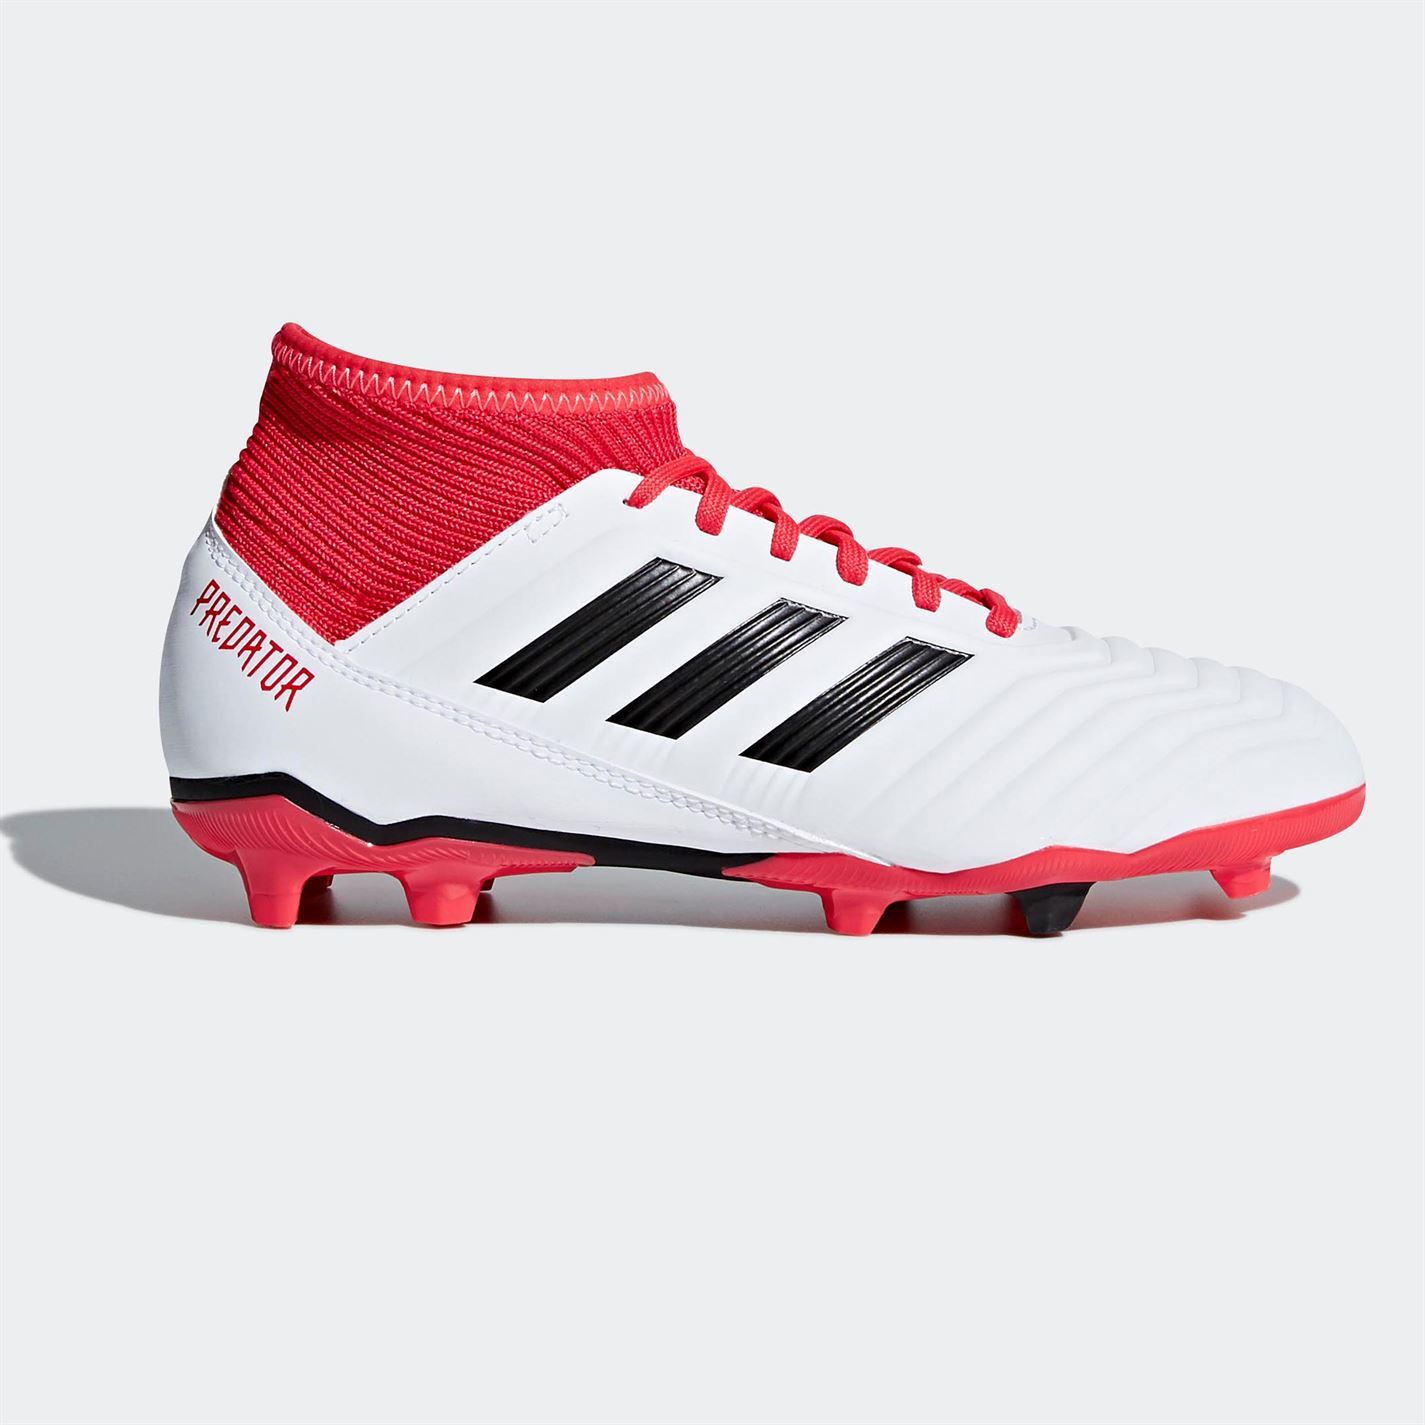 chaussures de sport ff493 fe55f Details about adidas Predator 18.3 Firm Ground Football Boots Childs White  Soccer Shoes Cleats